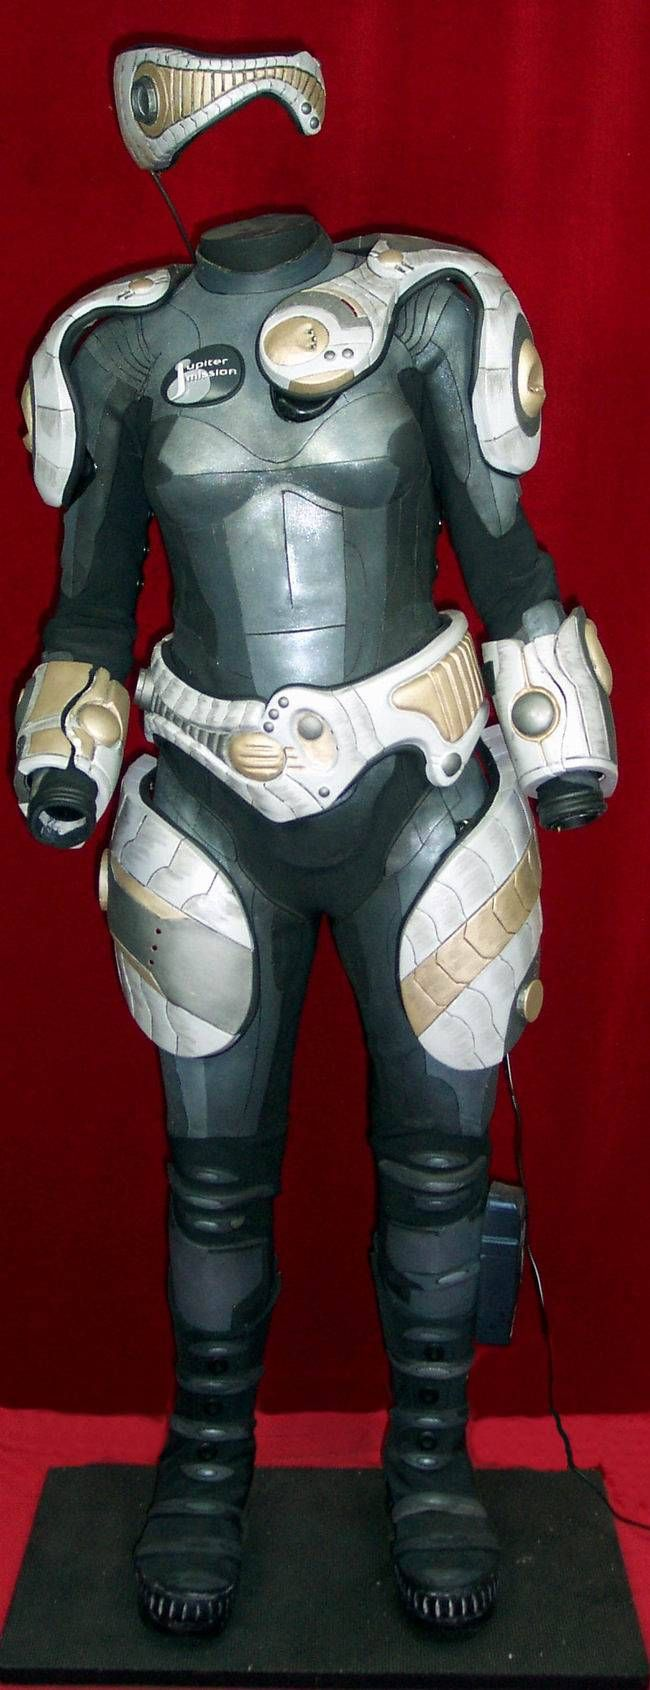 Penny Robinson Light Up Spacesuit | Prop Store - Ultimate Movie Collectables